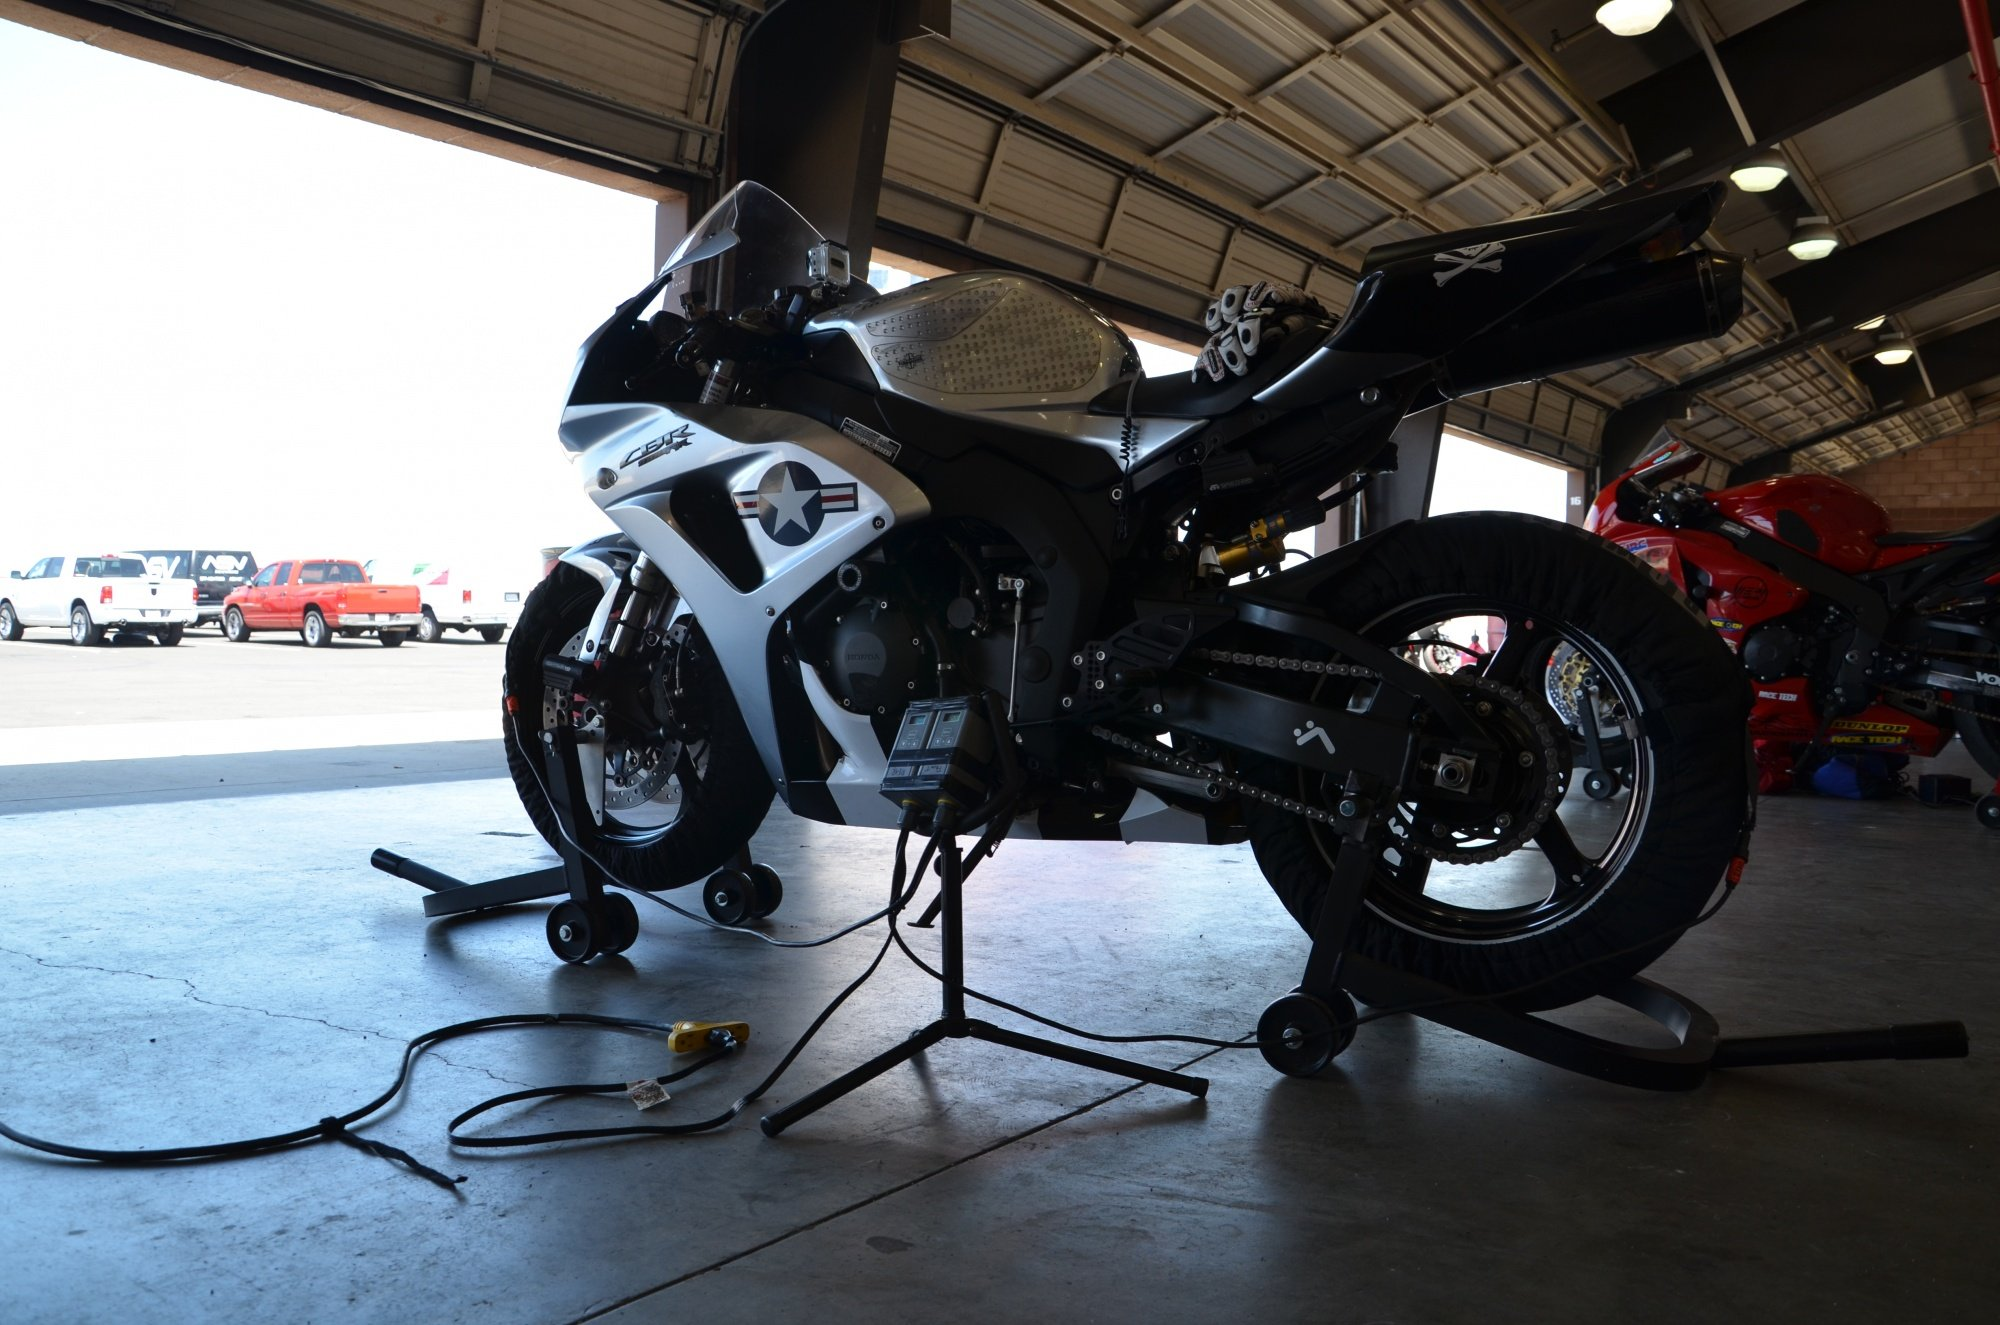 Best windshield for my 1000rr-and_1898.jpg